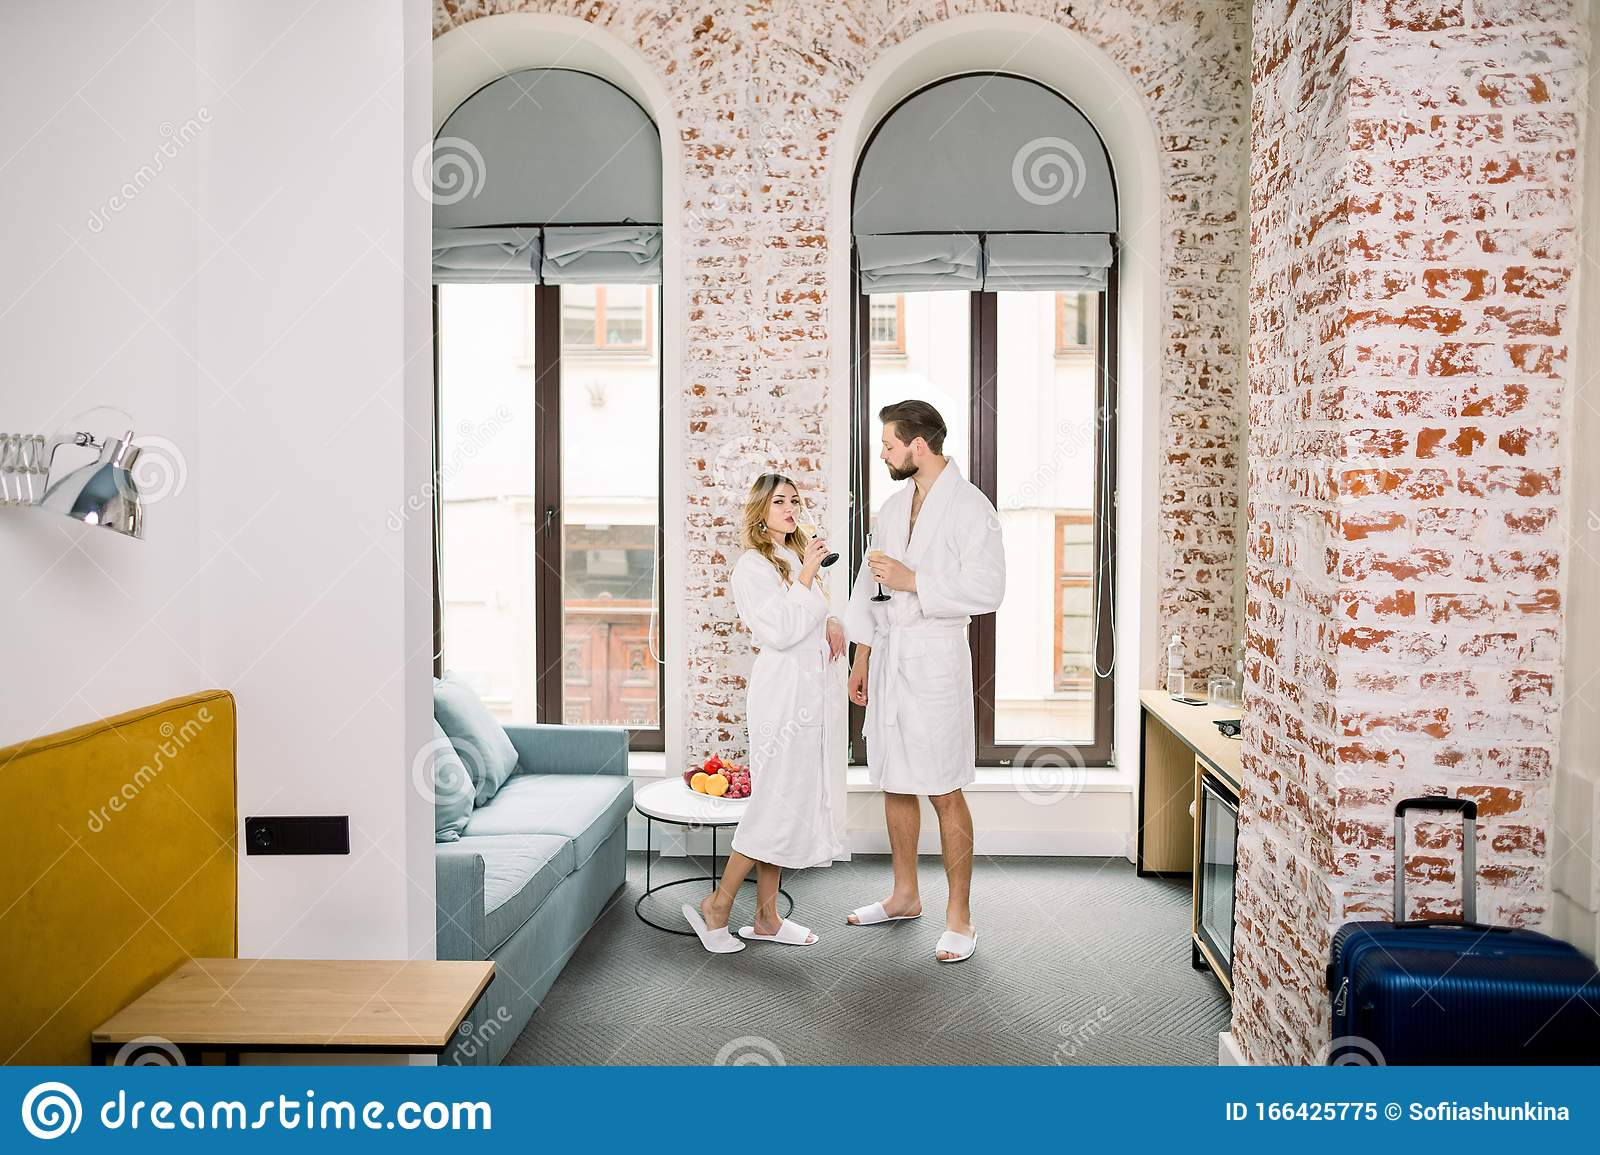 2 168 Hotel Room Valentine Photos Free Royalty Free Stock Photos From Dreamstime